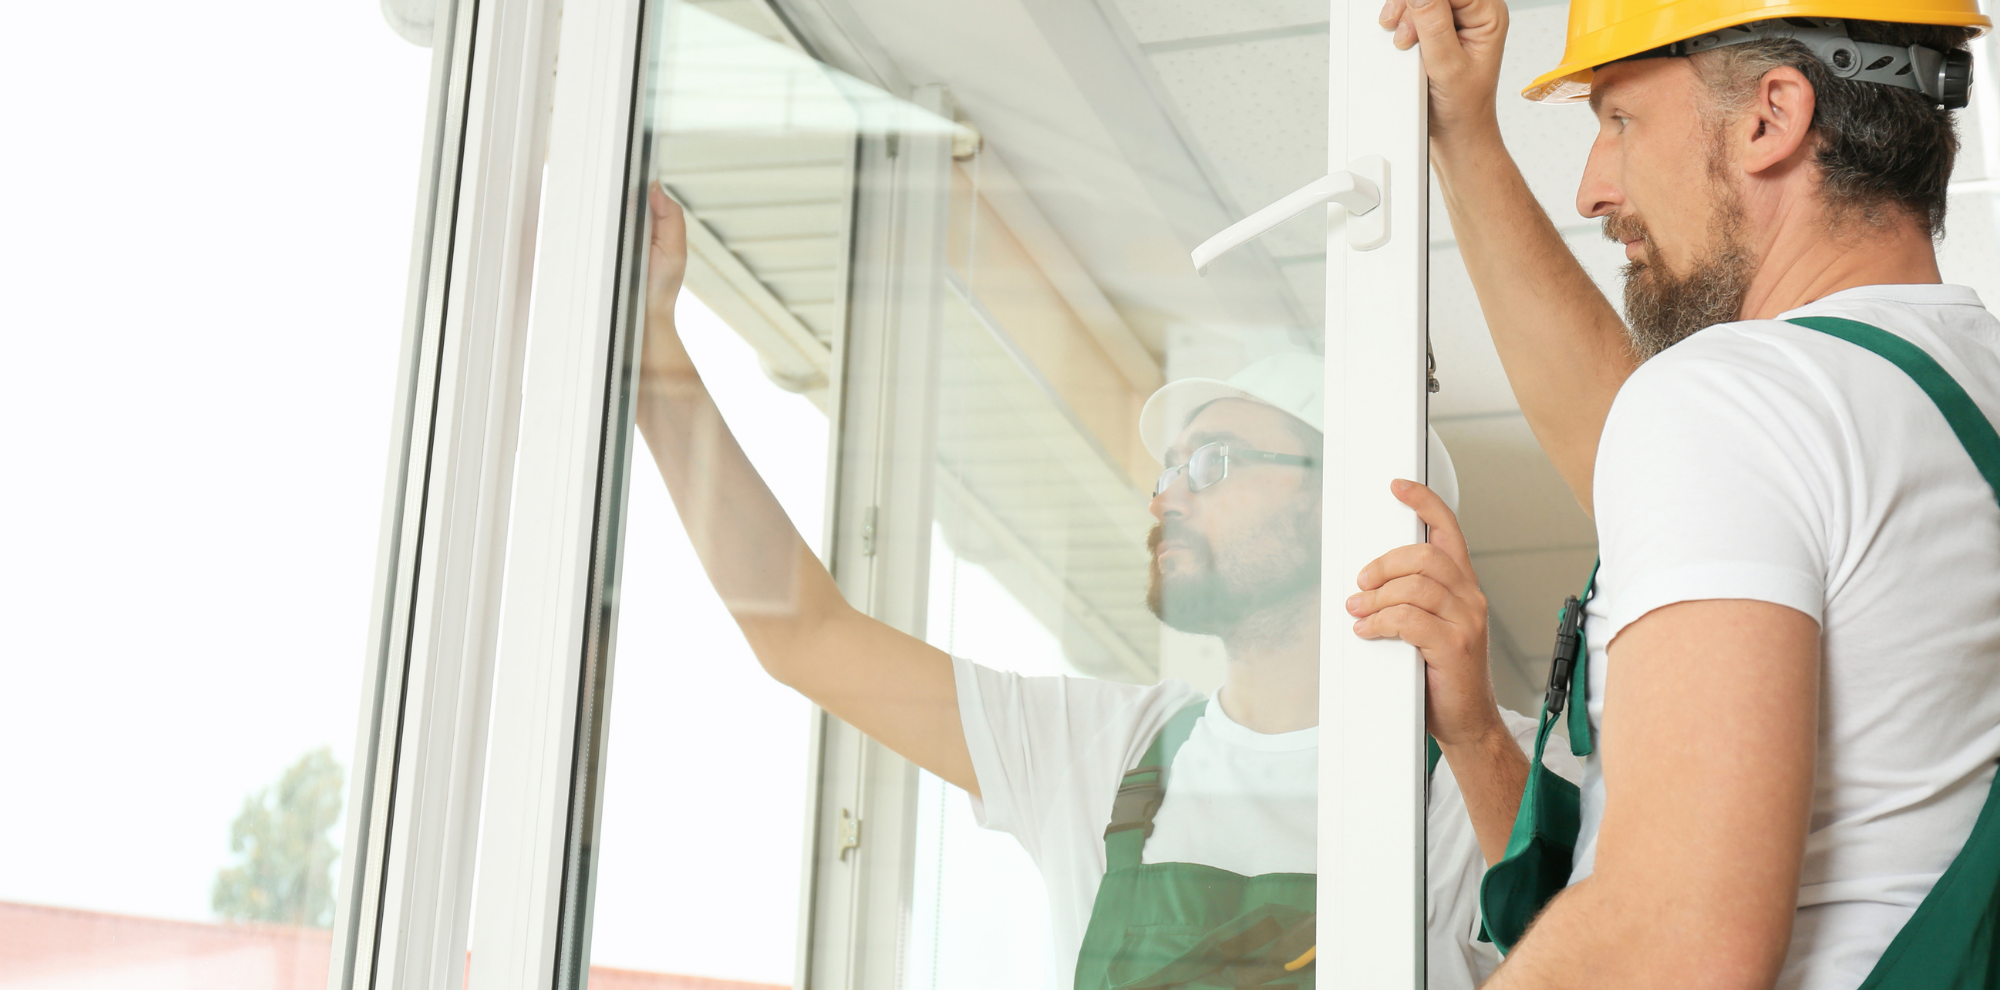 Category Preview - <h4>NVQ LEVEL 3<br><strong>DIPLOMA IN FENESTRATION SURVEYING<br></strong>£995 + FREE CSCS CARD</h4>